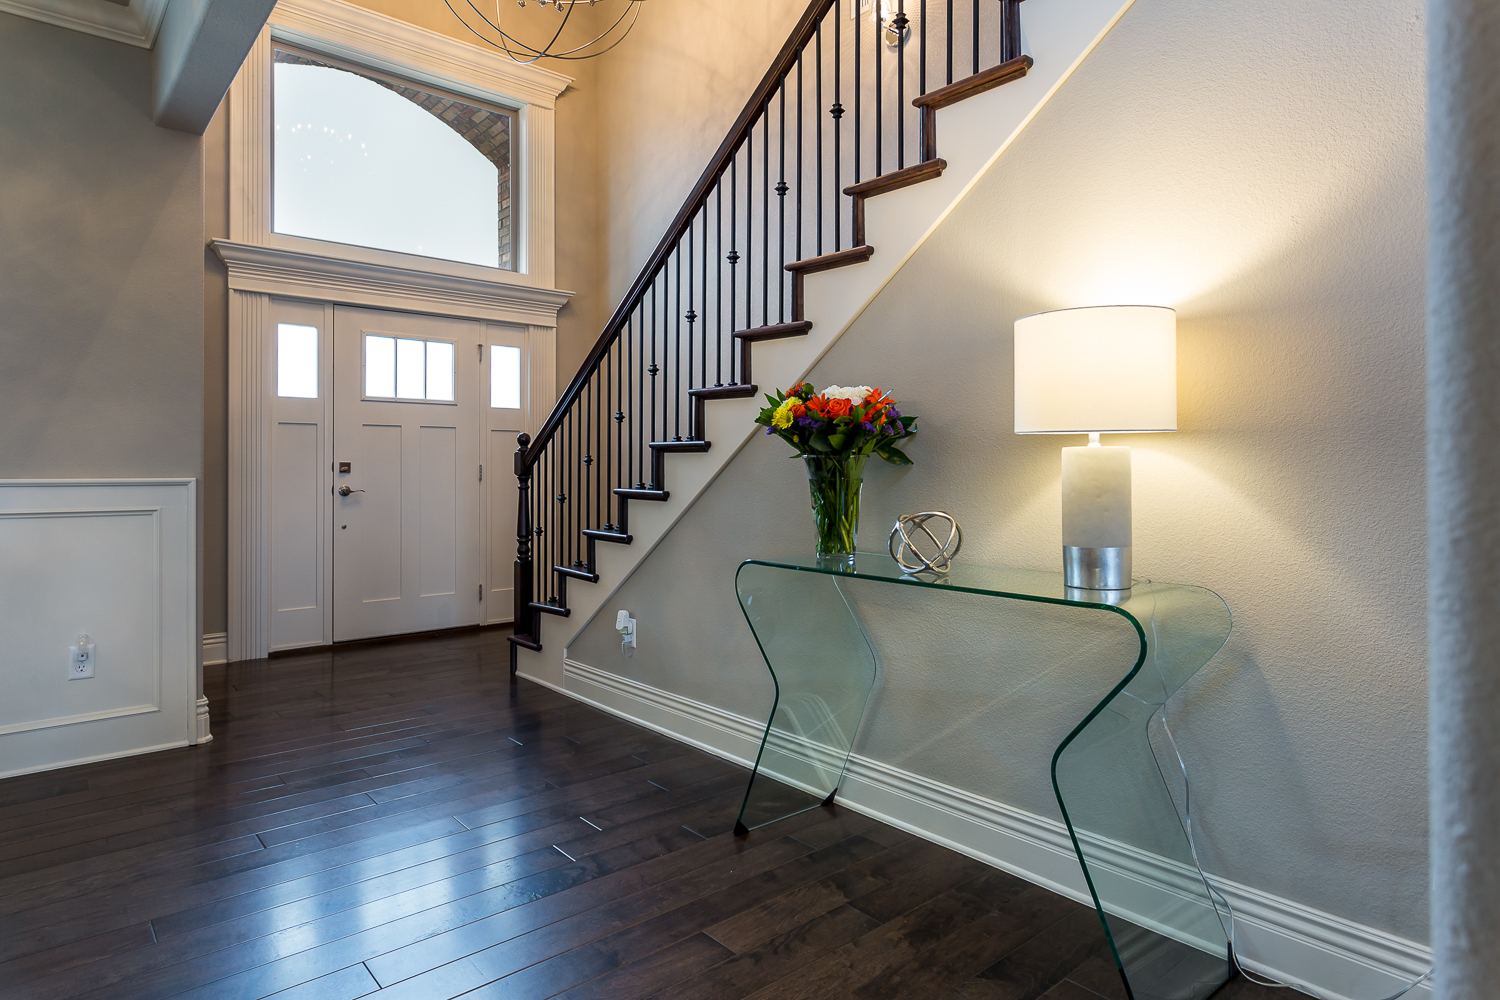 Foyer shot  real estate photo of home in Quailridge community of